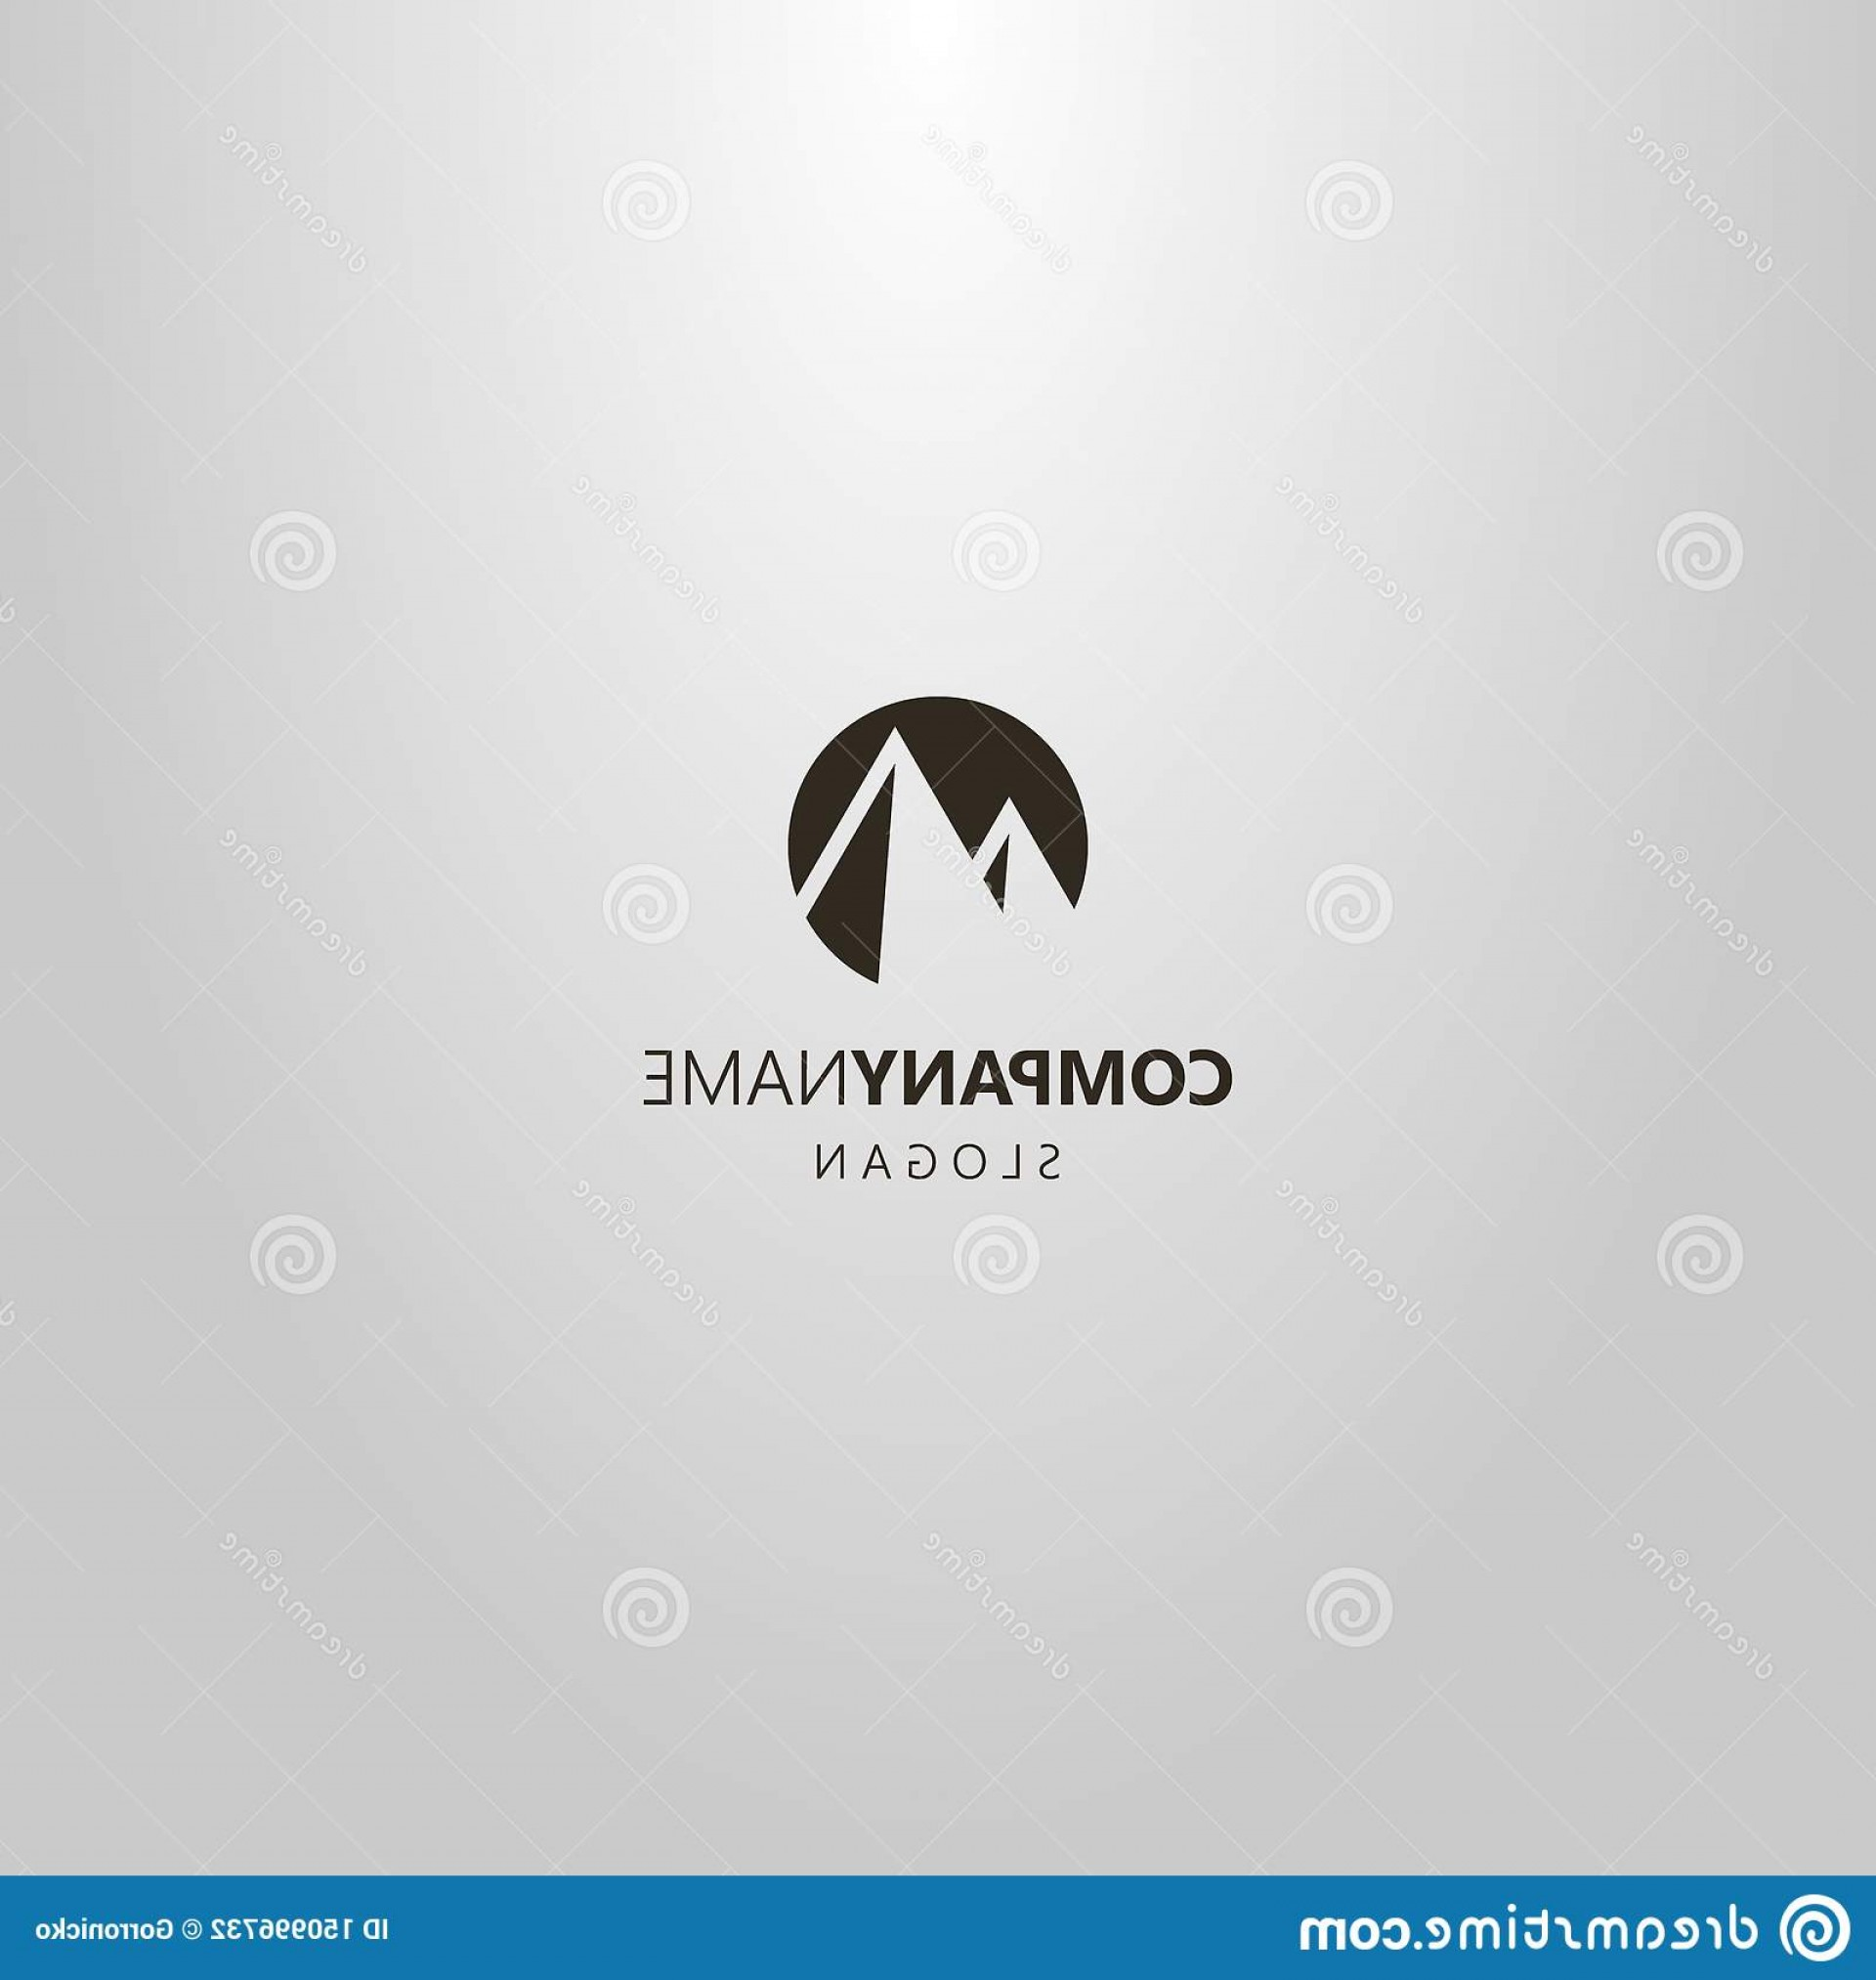 Art Space Logo Vector: Black White Simple Vector Flat Art Negative Space Round Logo Two Mountain Peaks Image